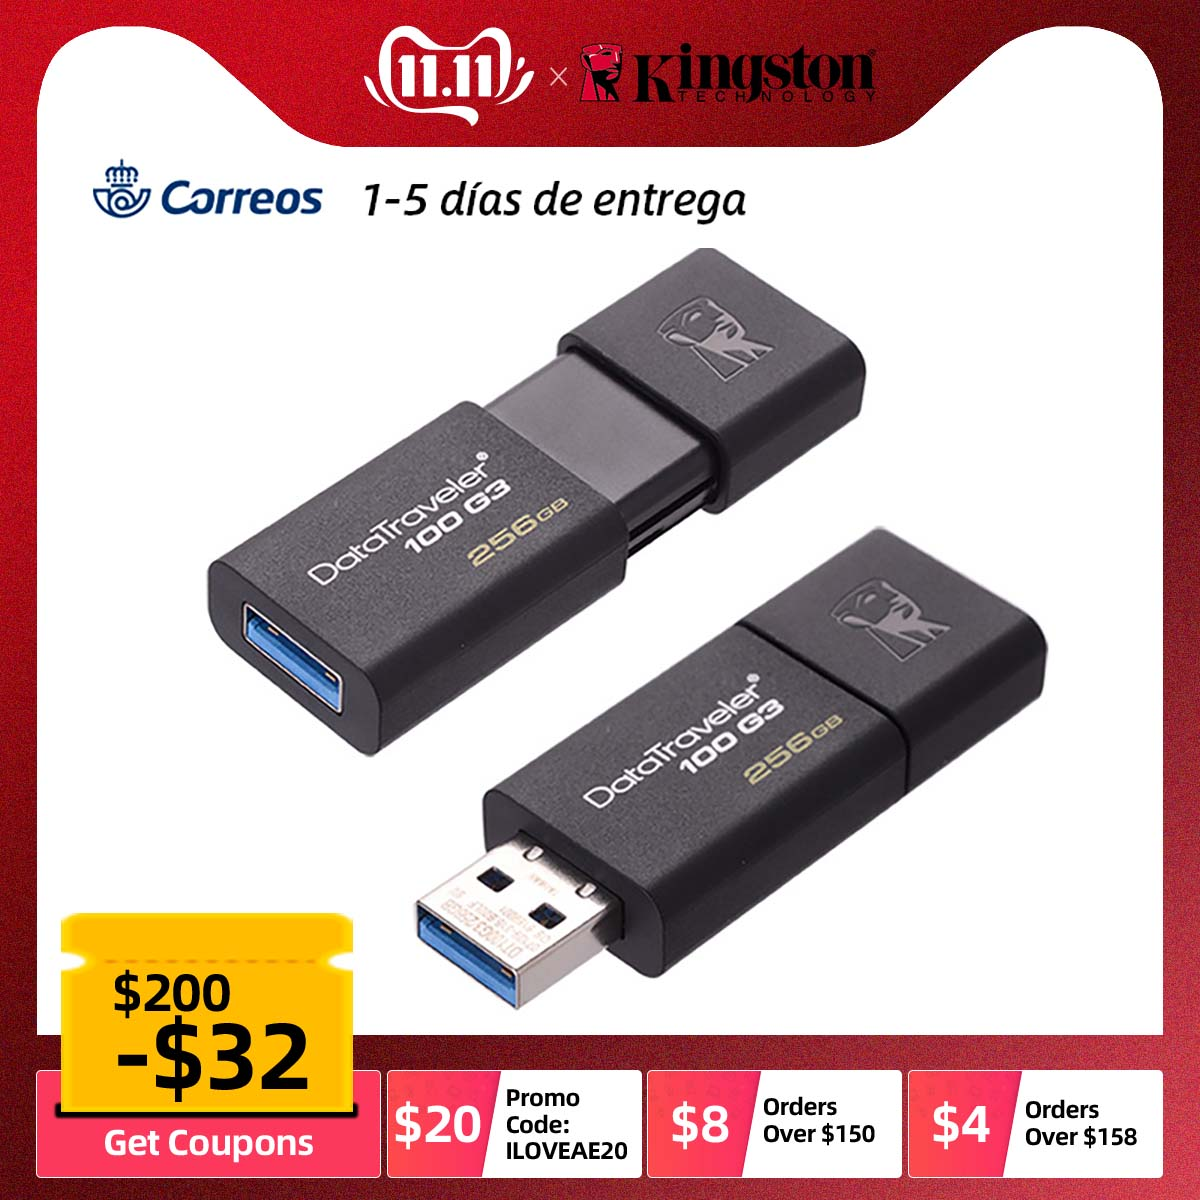 Alta Velocidade Original Kingston DataTraveler USB 3.0 USB Flash Drive GB 64 32GB 128 GB 32 DT100G3 64 128 GB Pen Drive Vara Pendrive